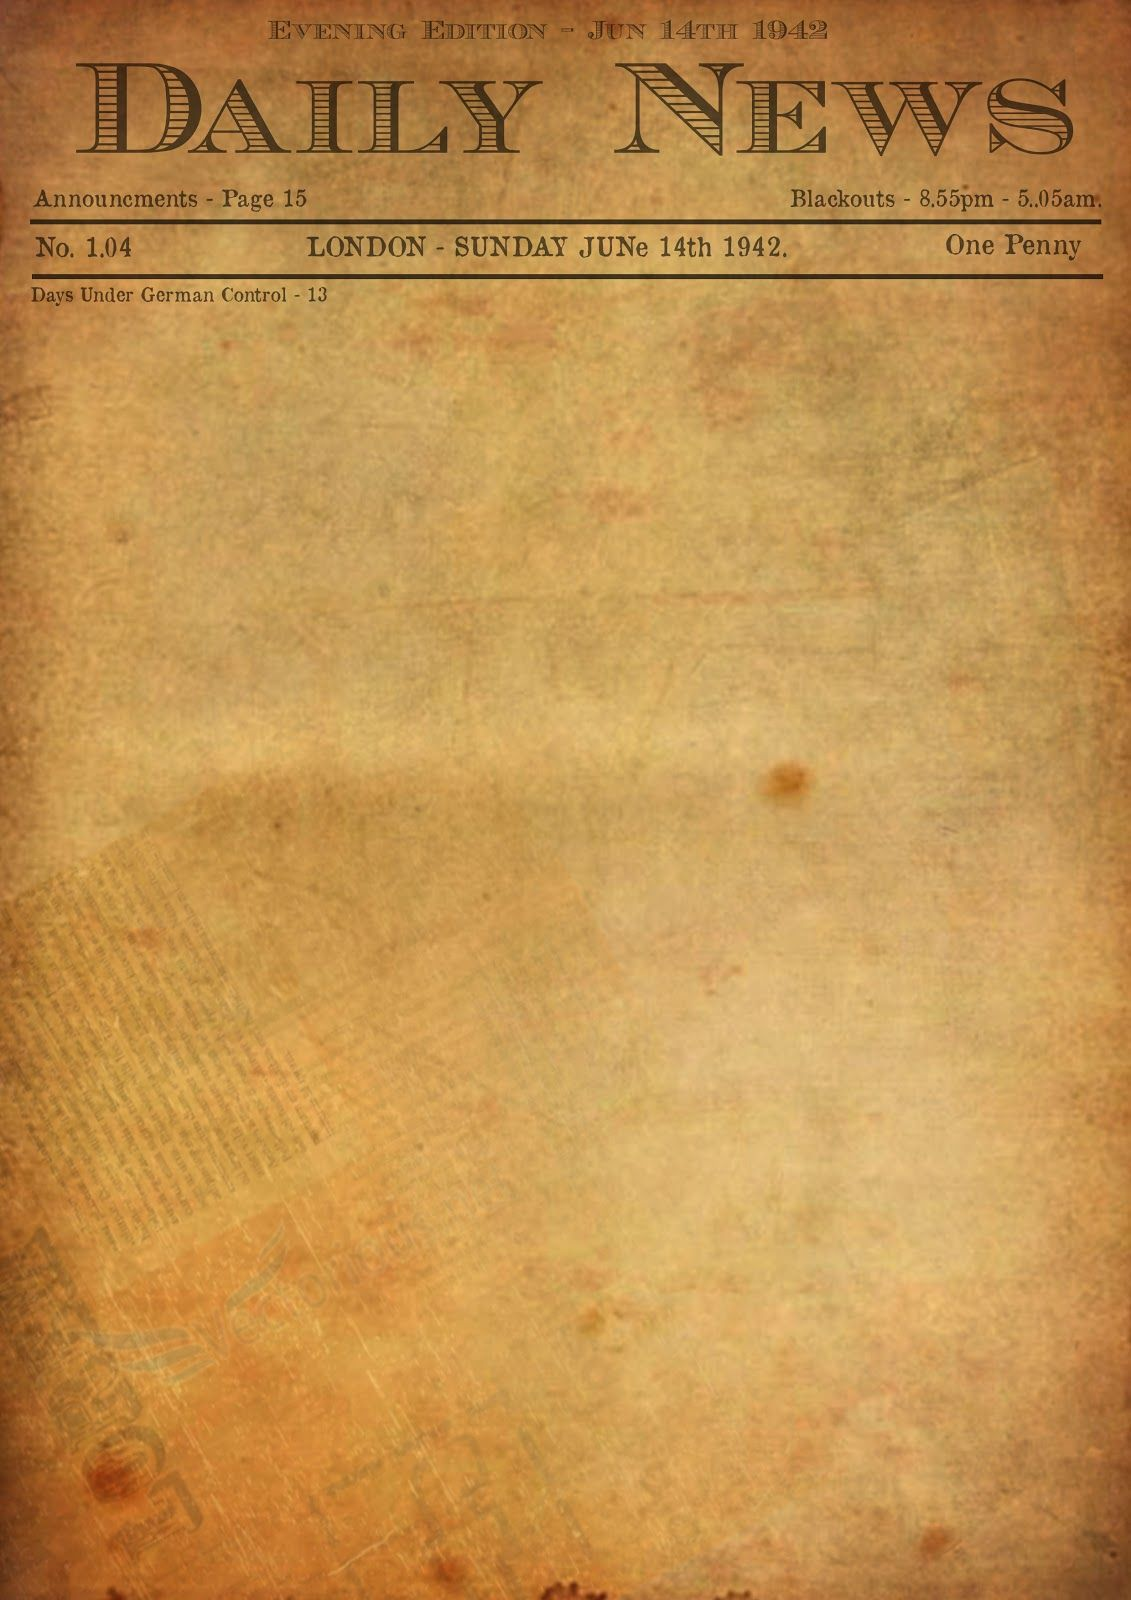 Best photos of old newspaper template editable old newspaper best photos of old newspaper template editable old newspaper toneelgroepblik Images